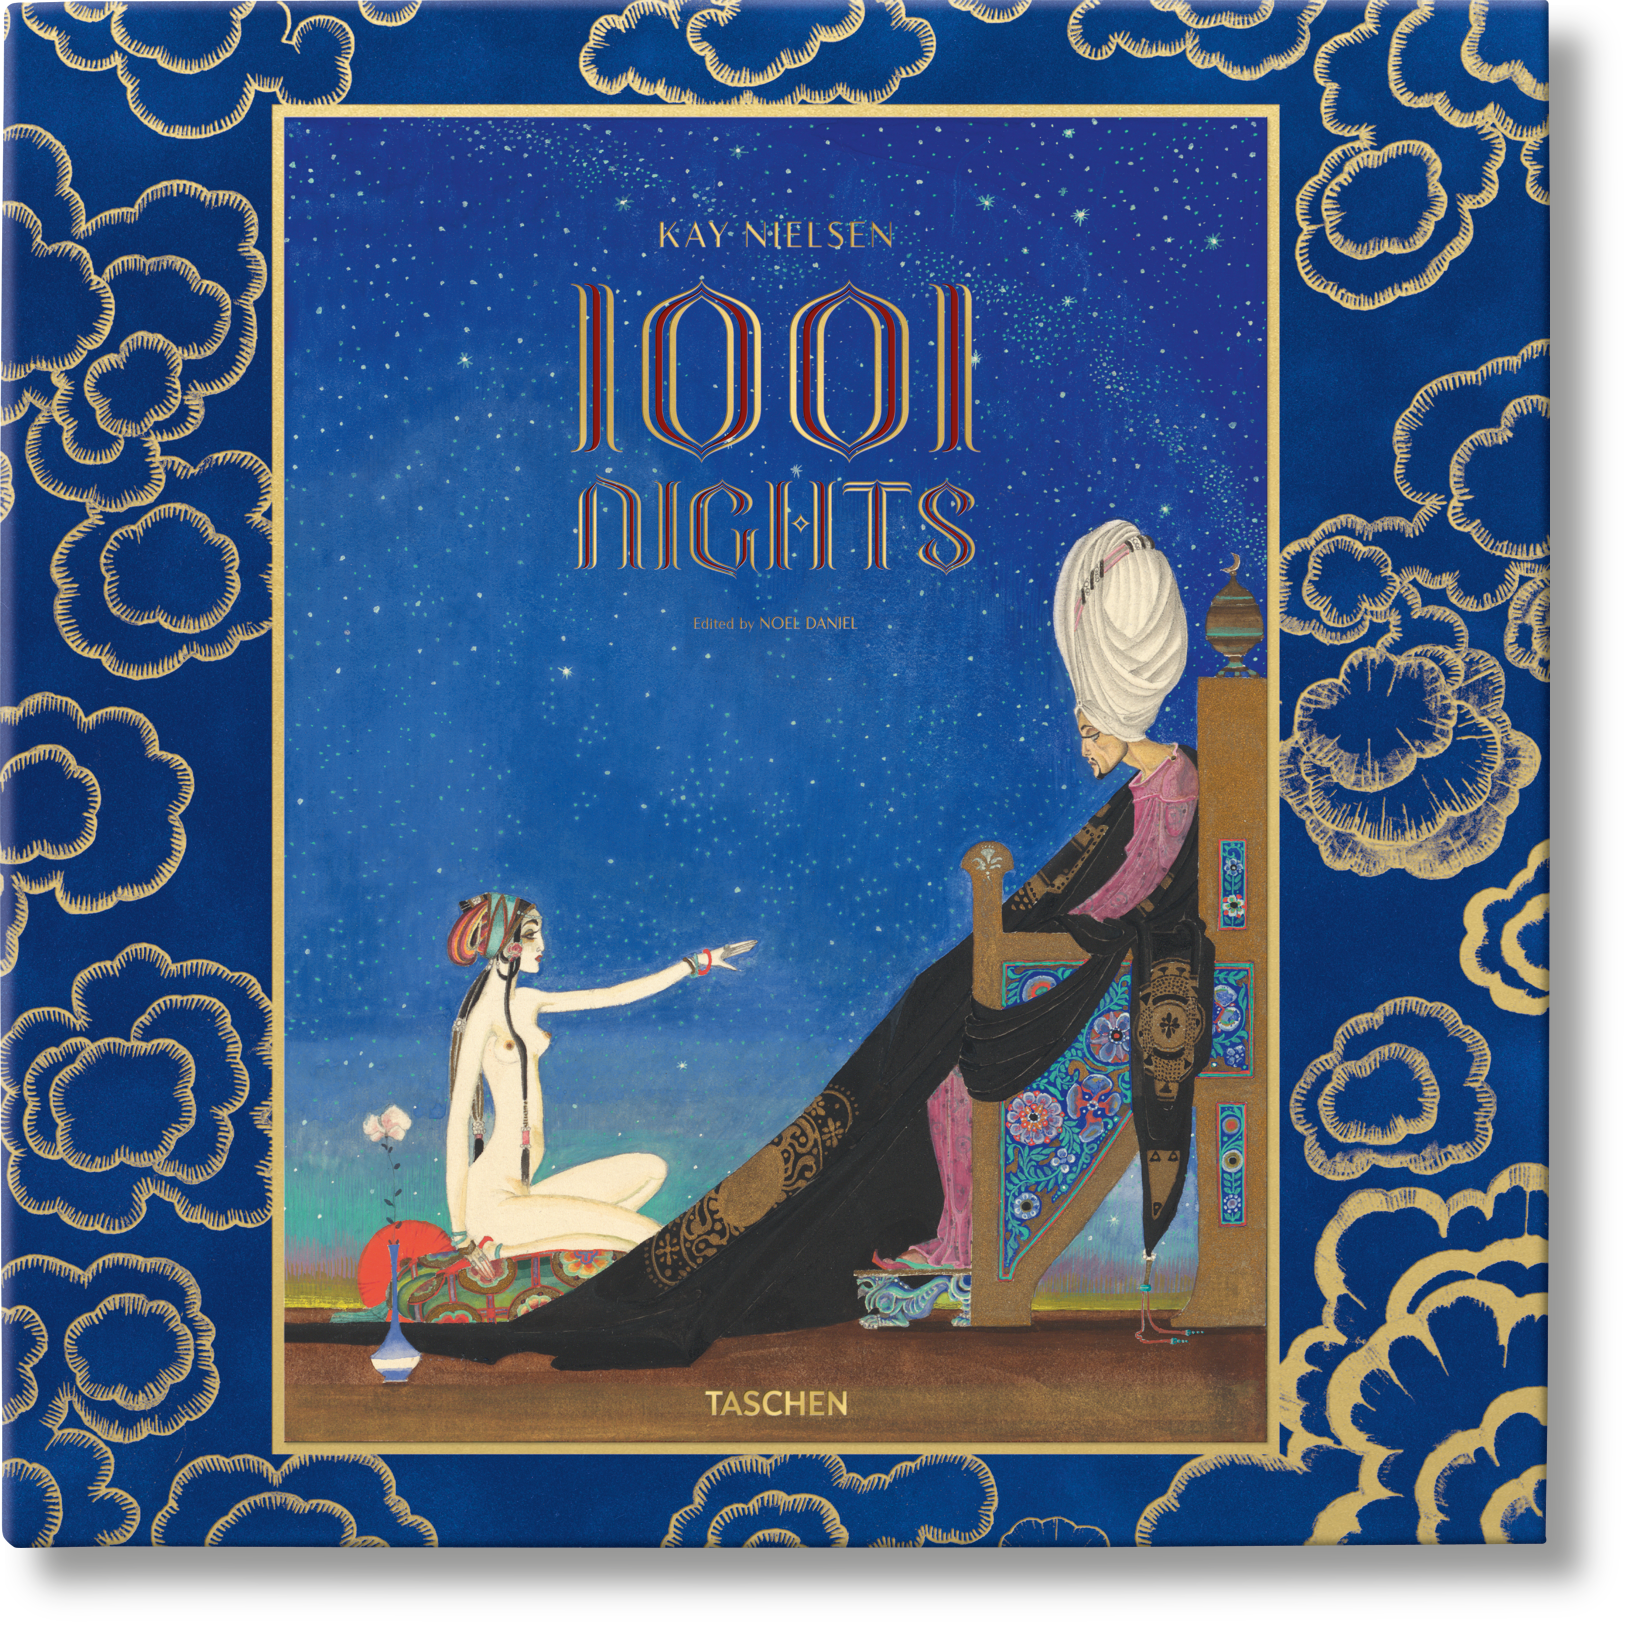 The 1001 Nights